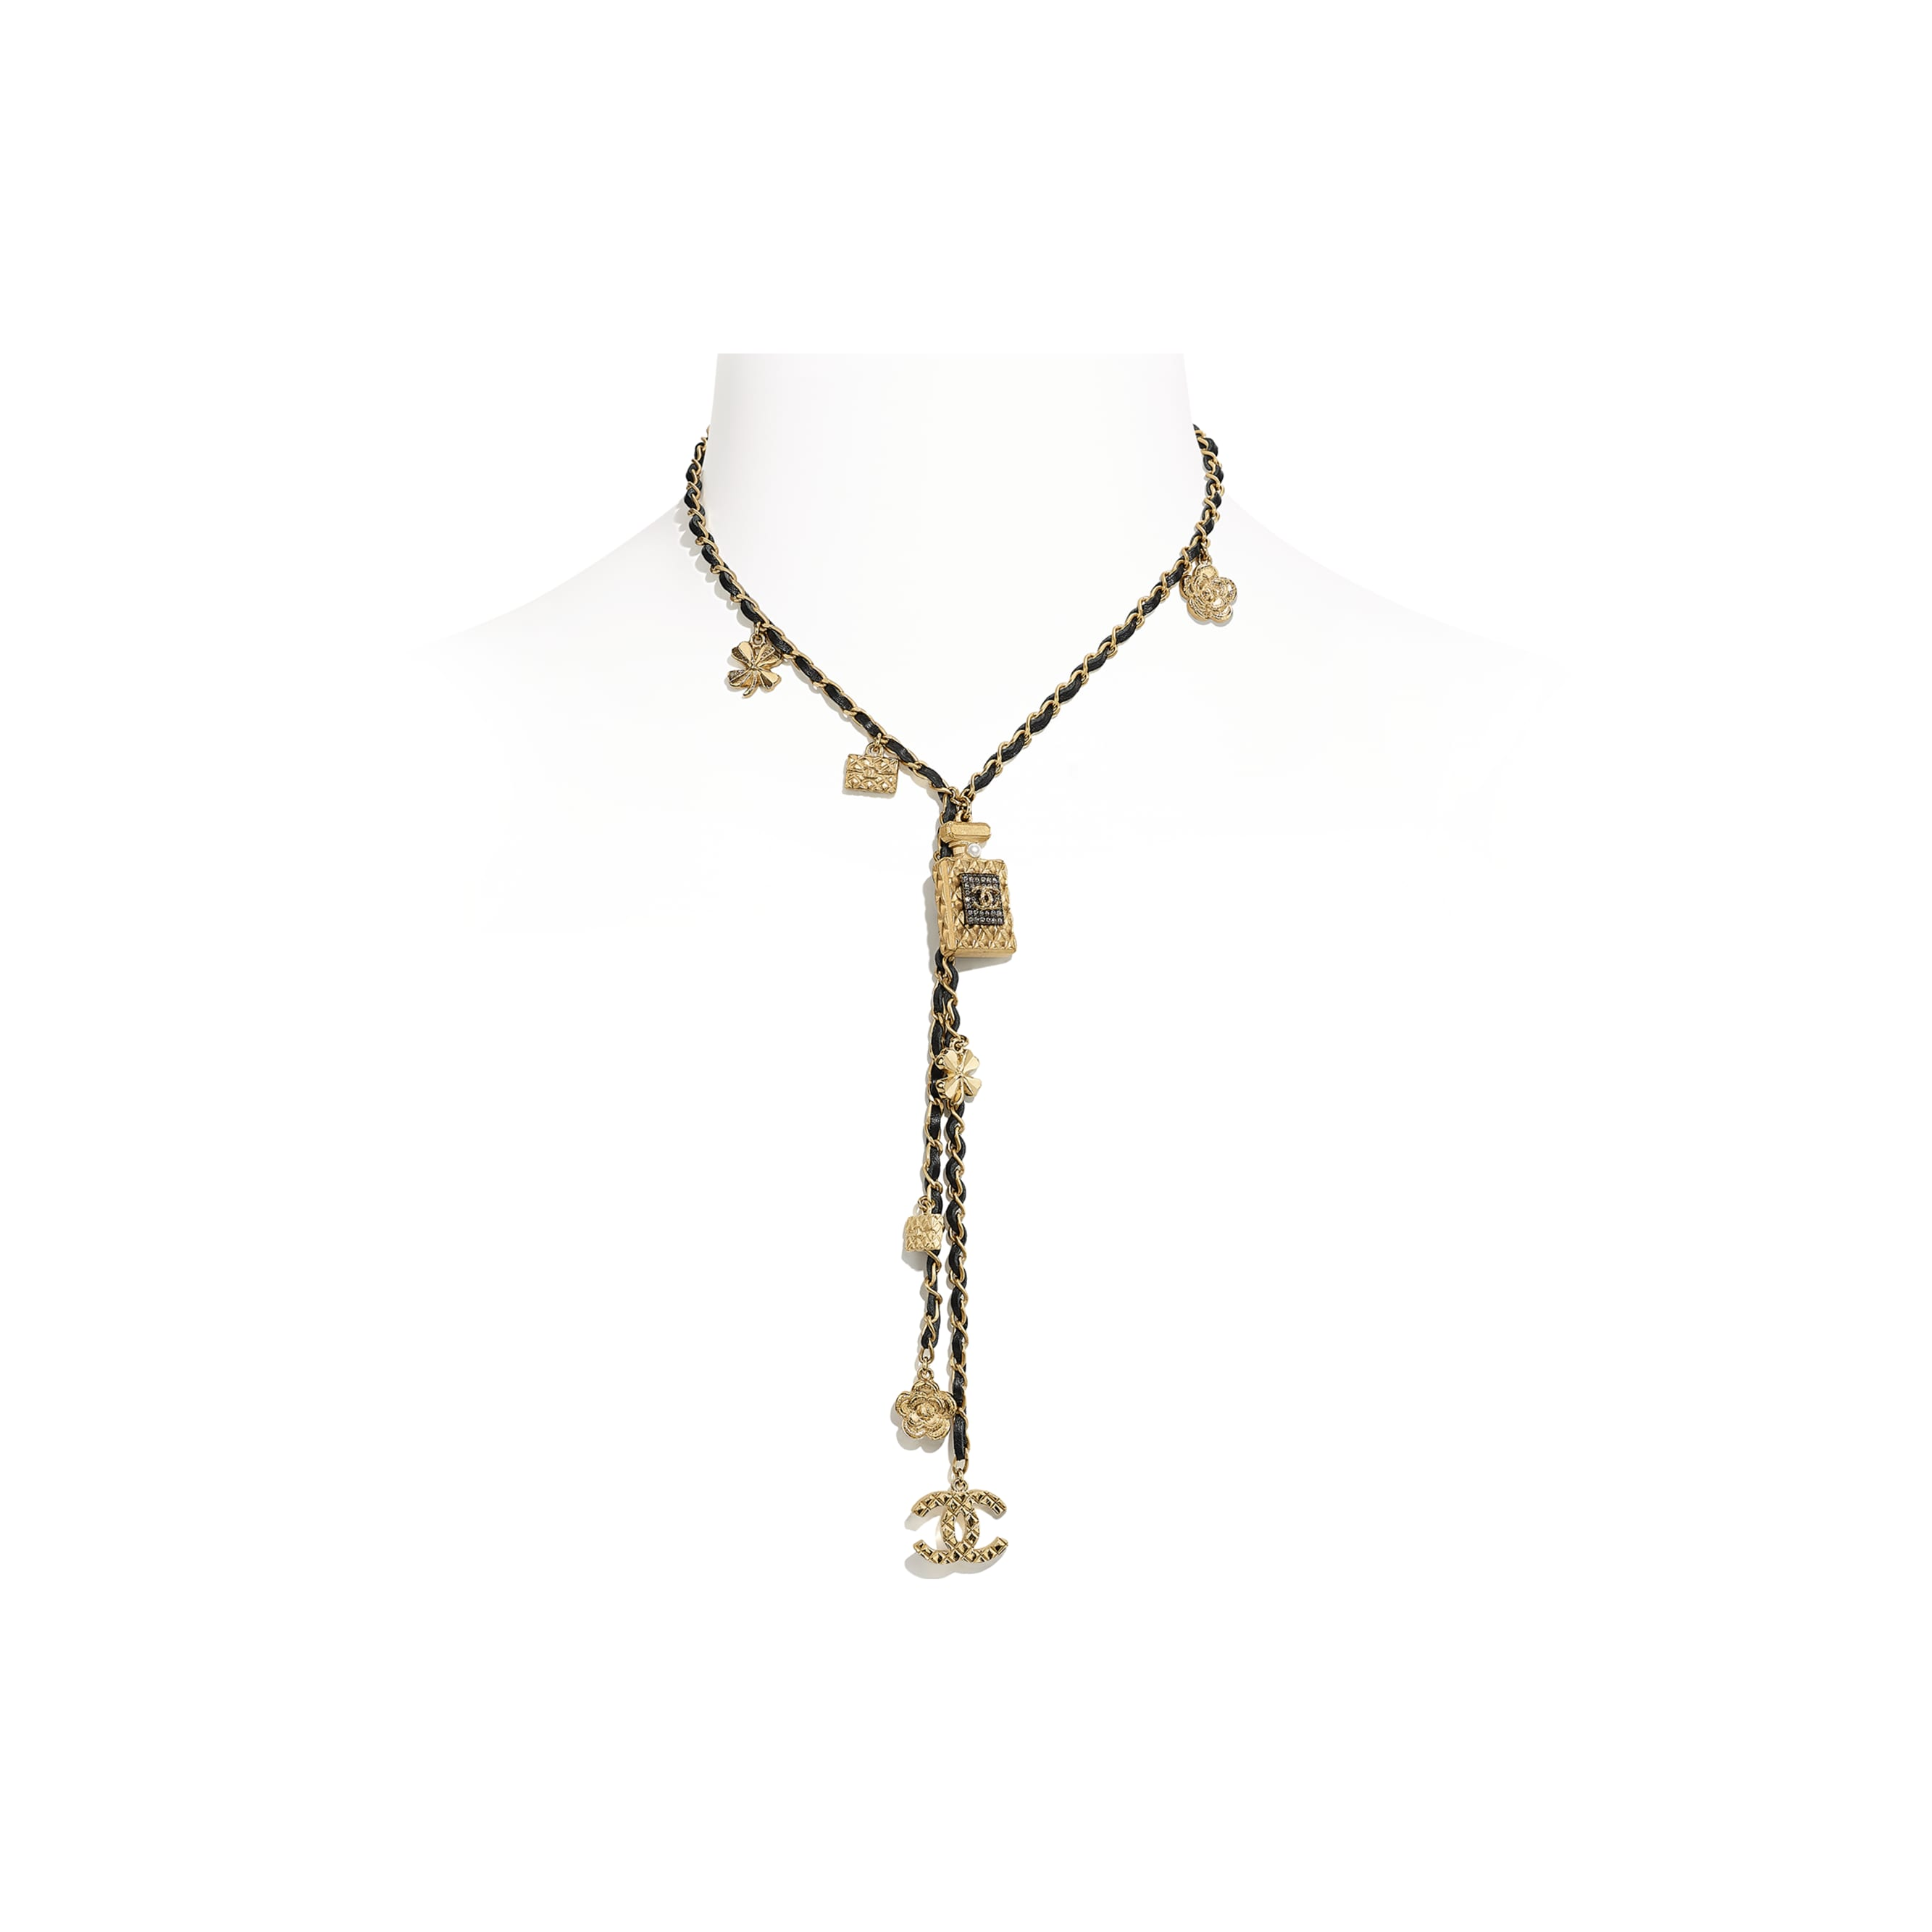 Necklace - Gold, Ruthenium, Pearly White, Black & Crystal - Metal, glass pearls, calfskin & diamanté - CHANEL - Default view - see standard sized version